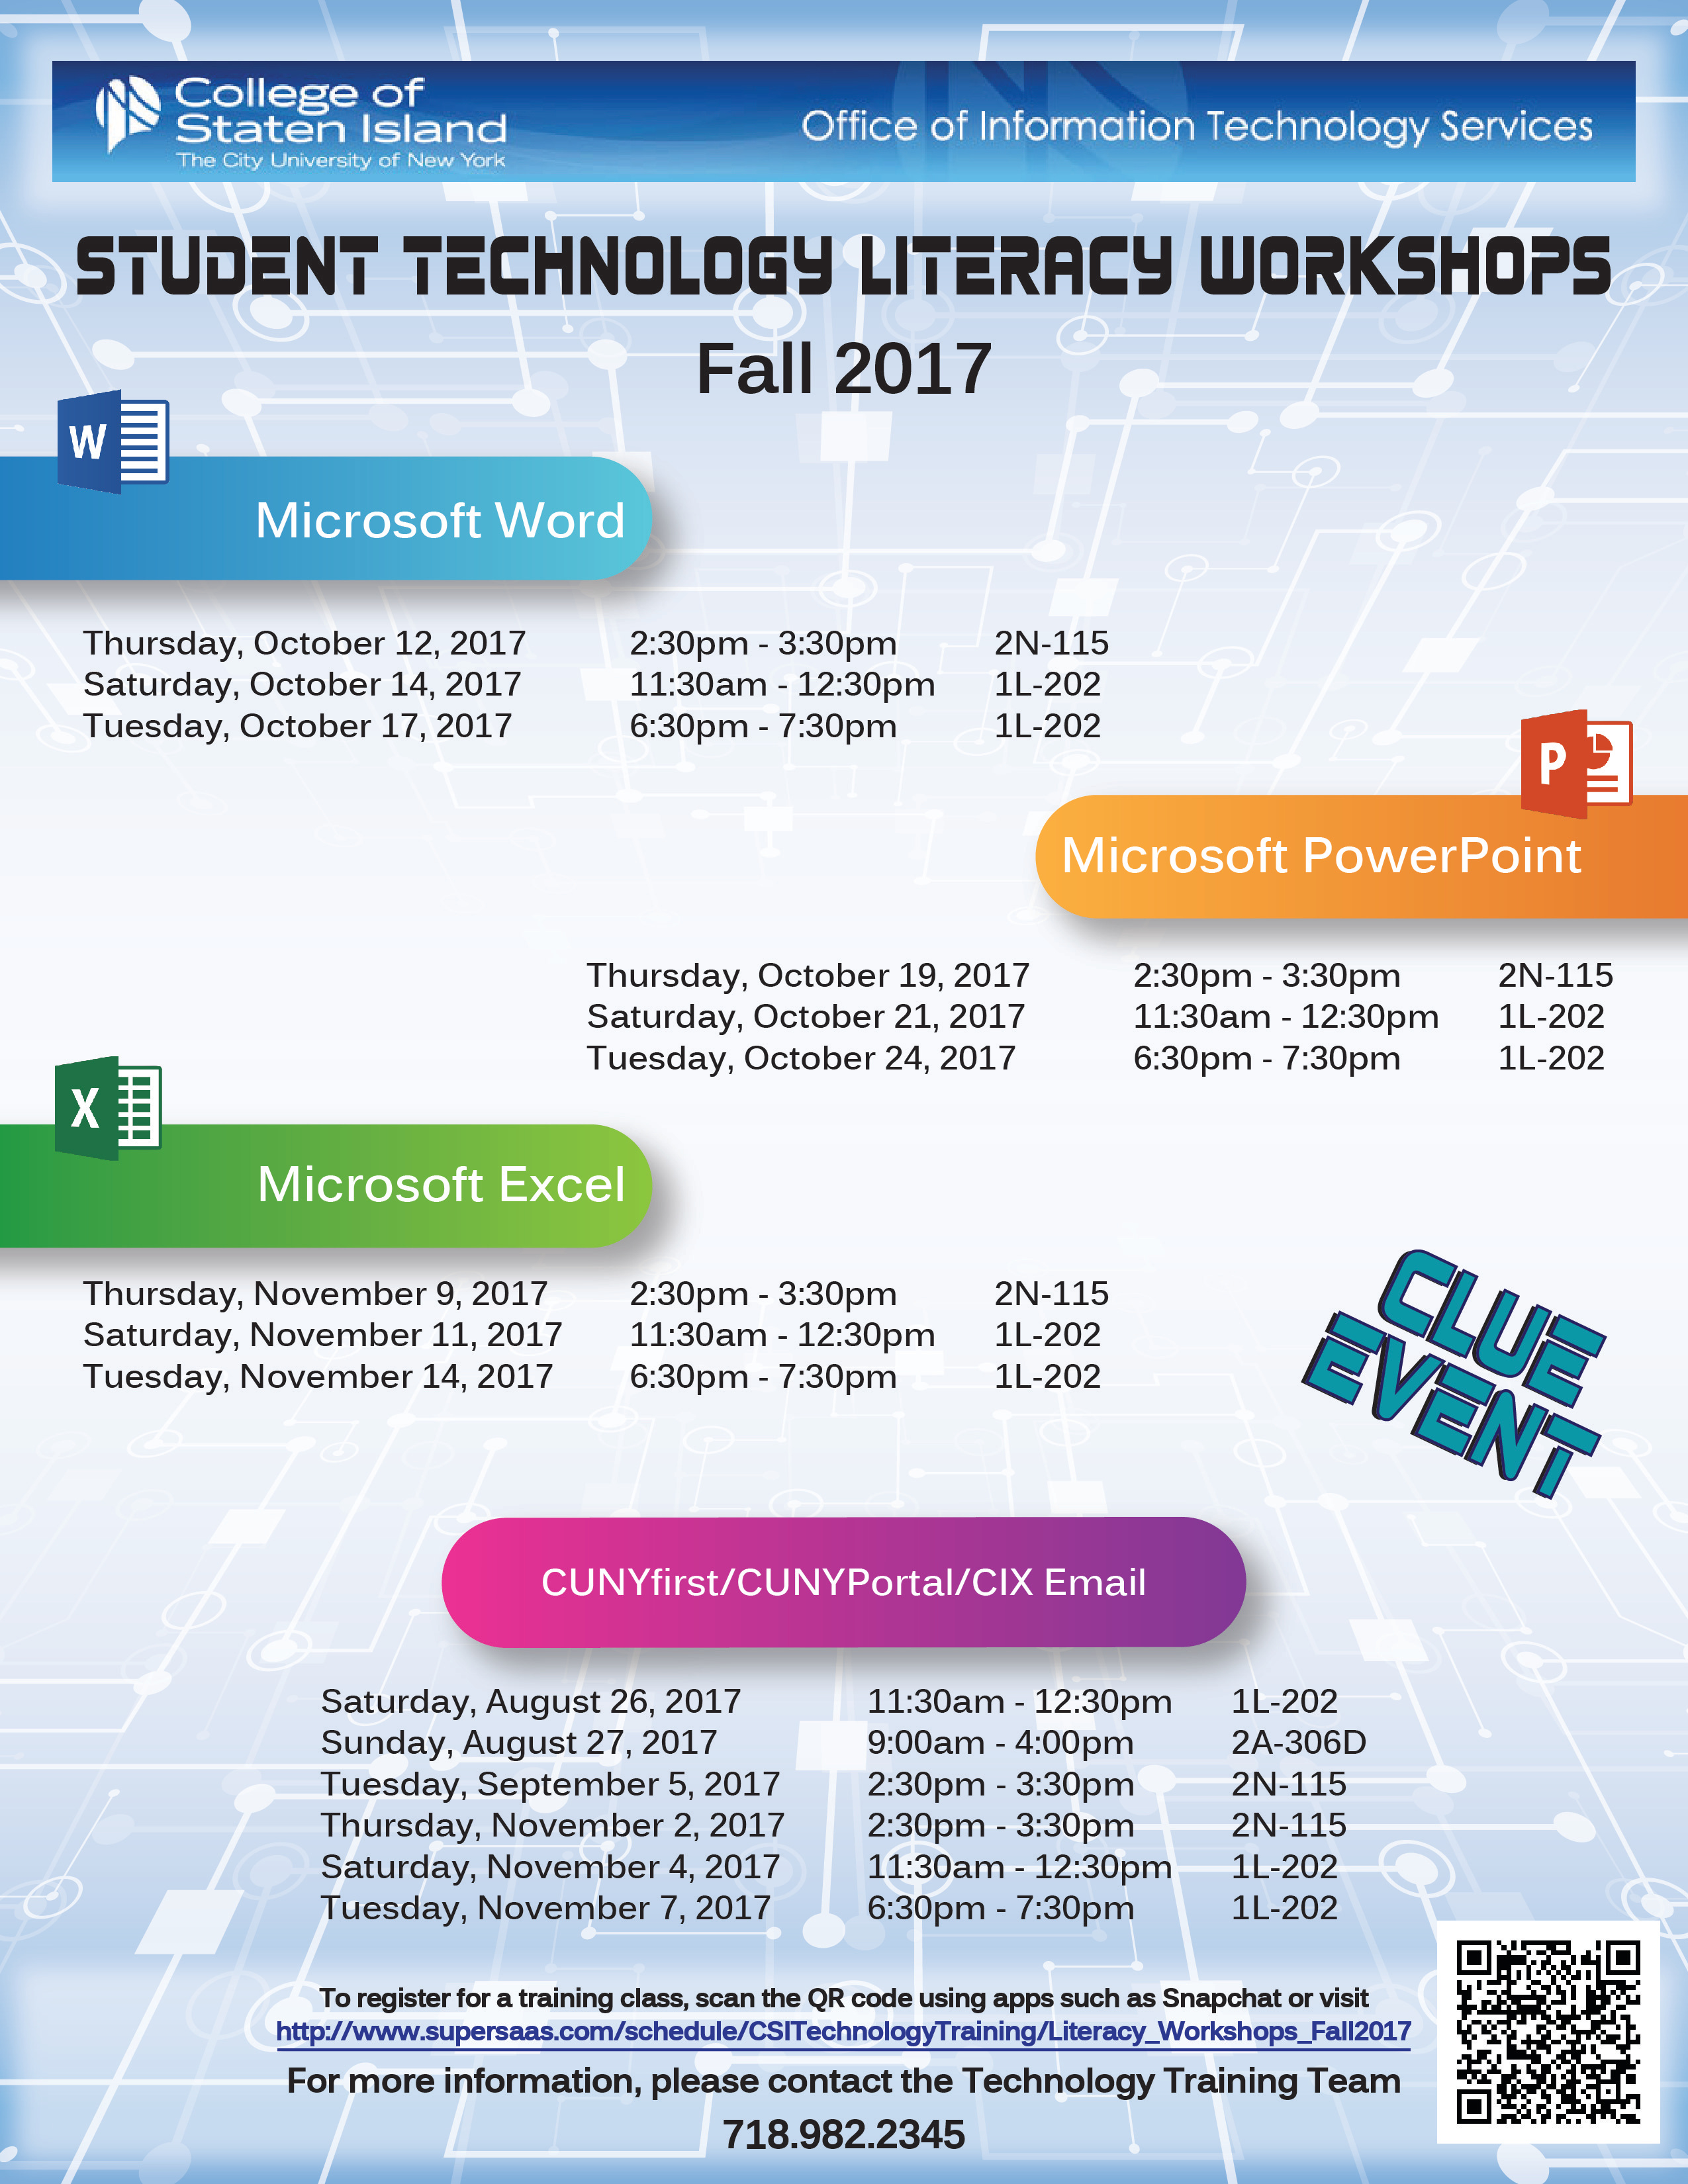 Student Technology Training Workshop